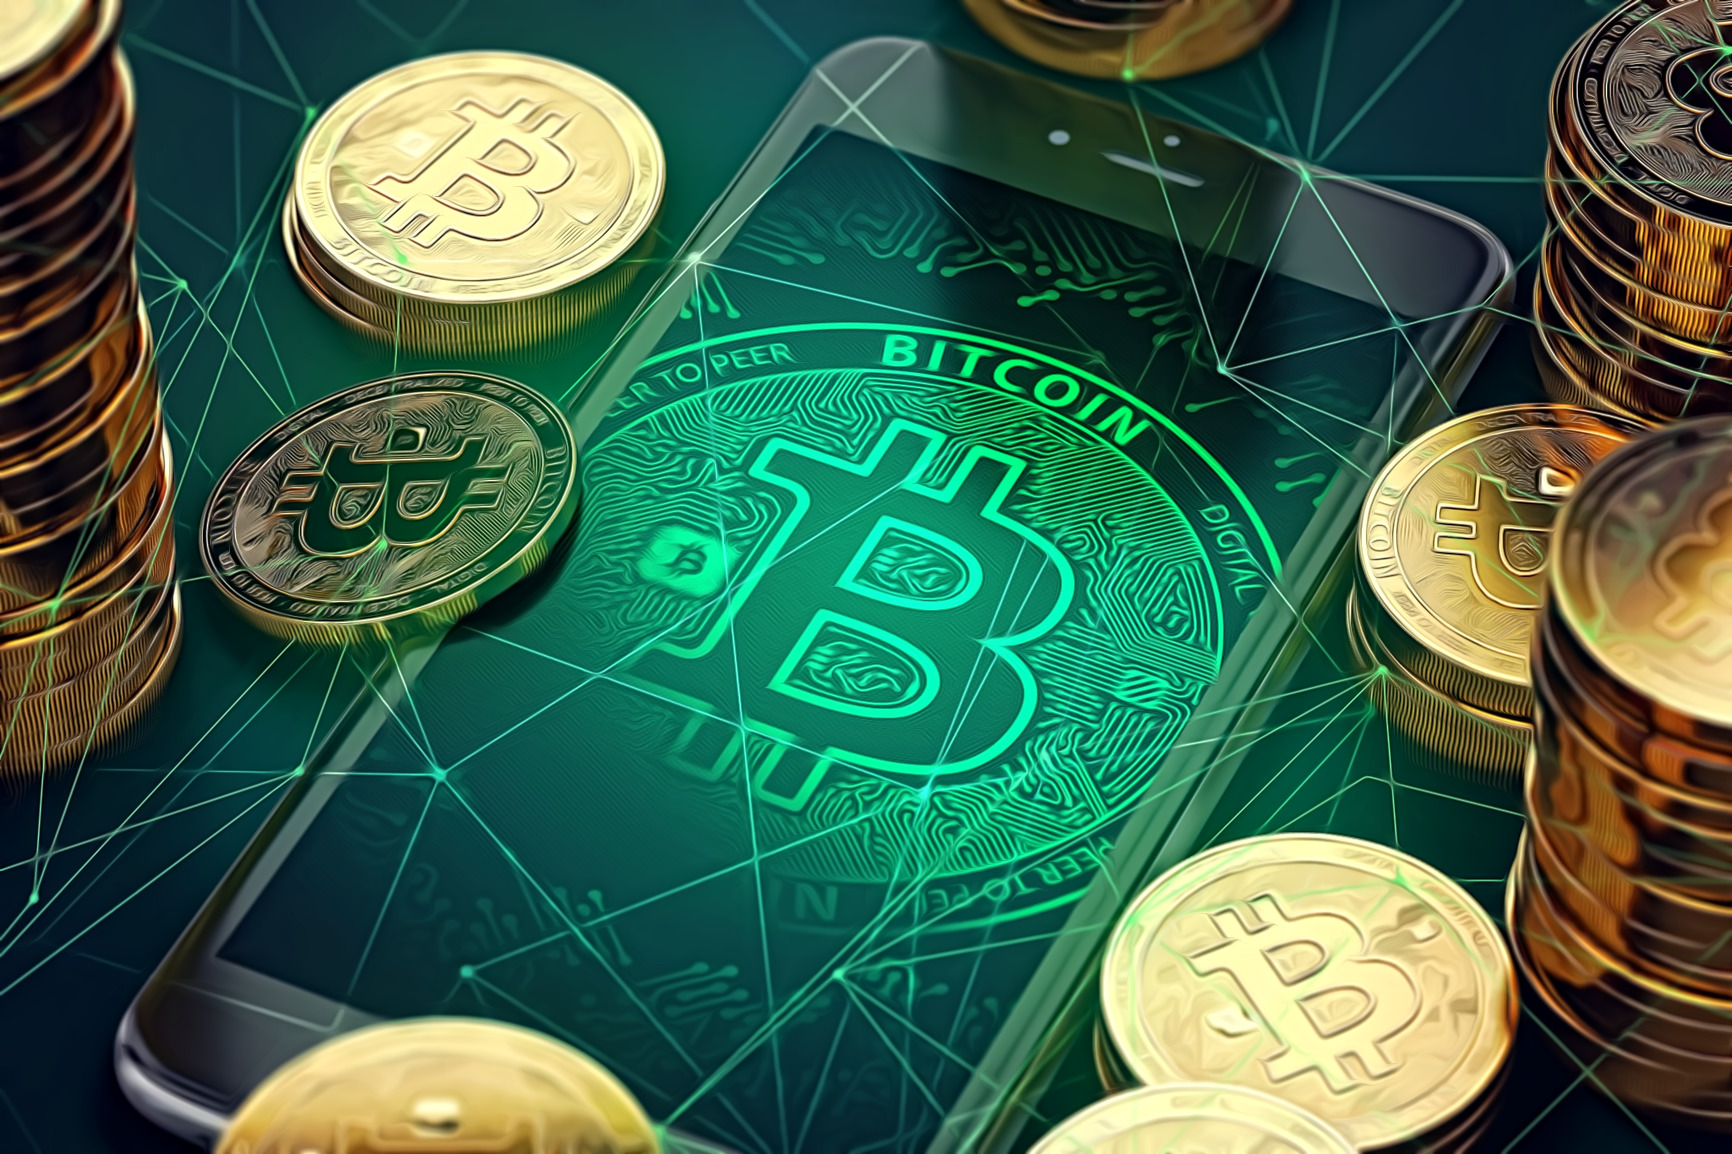 global virtual currency market 2014 Description: the global virtual currency market research report provides unique presentation and the statistics related to the present and past route of the market.